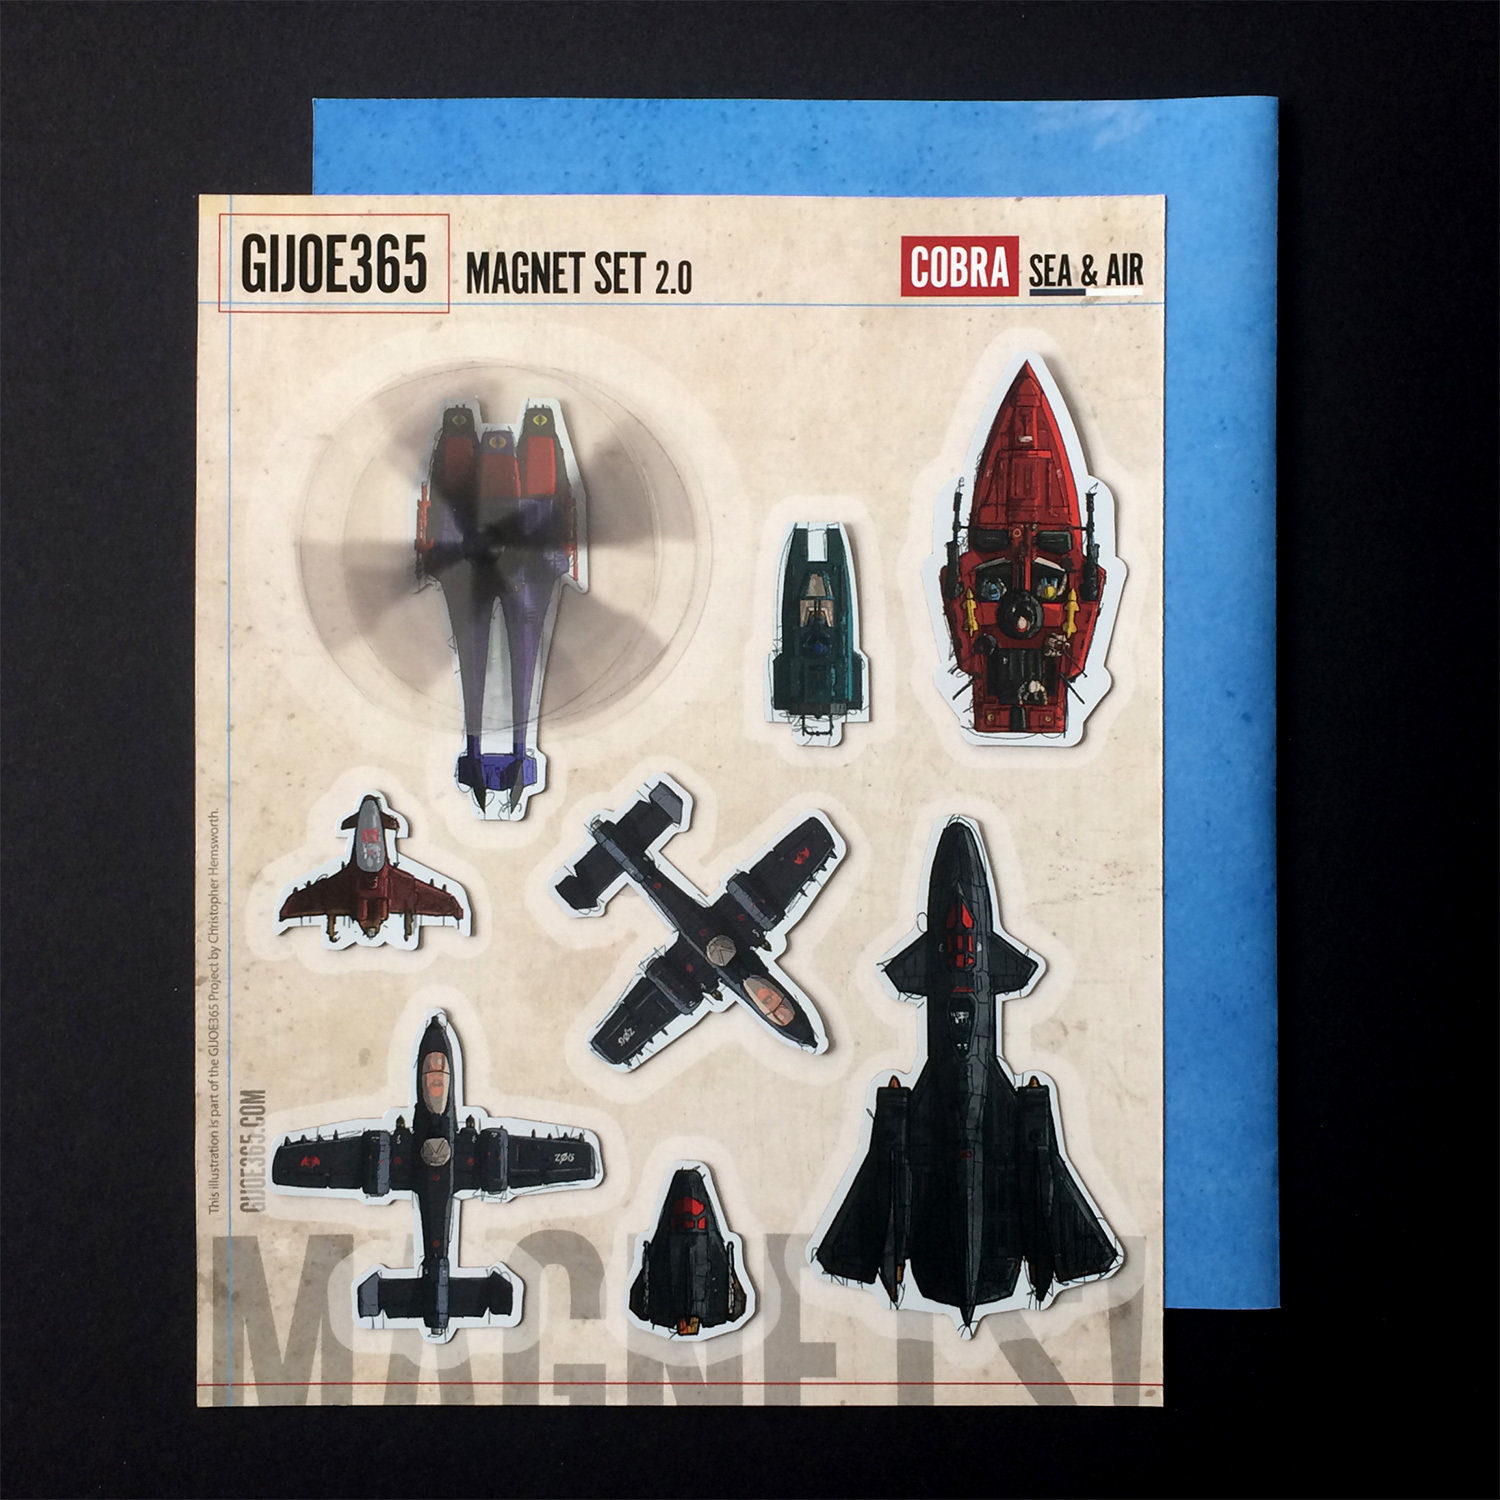 GIJOE365 Cobra Sea/Air Magnet Set